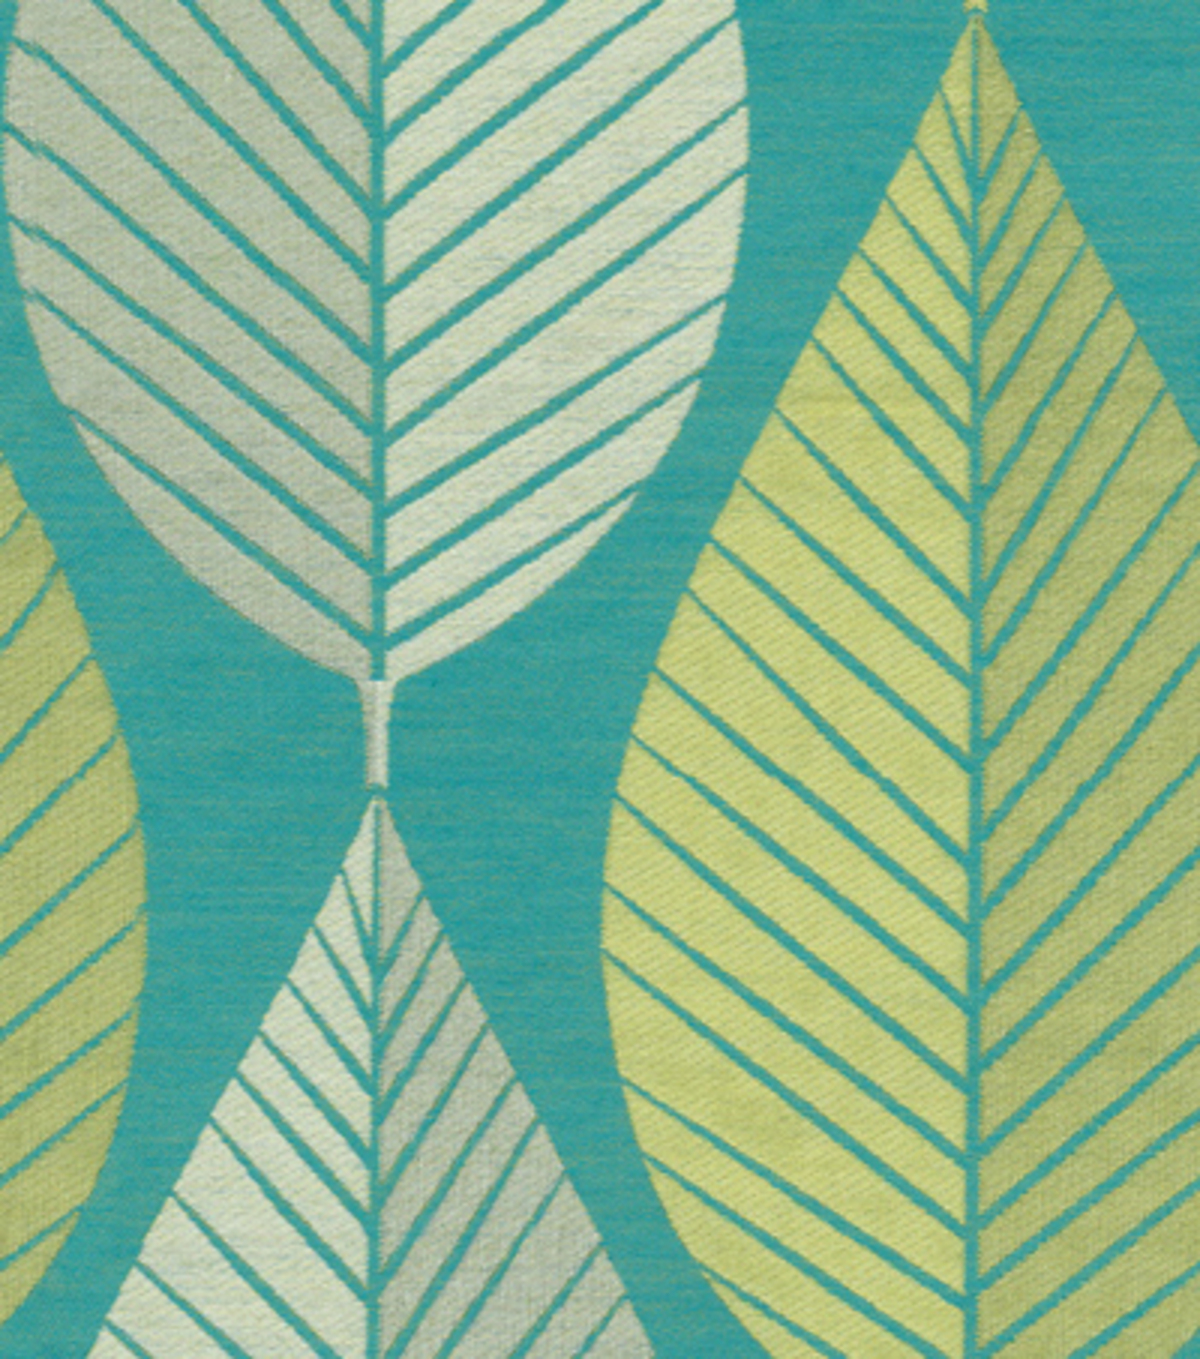 HGTV Home Upholstery Fabric-Looseleaf/Turquioise